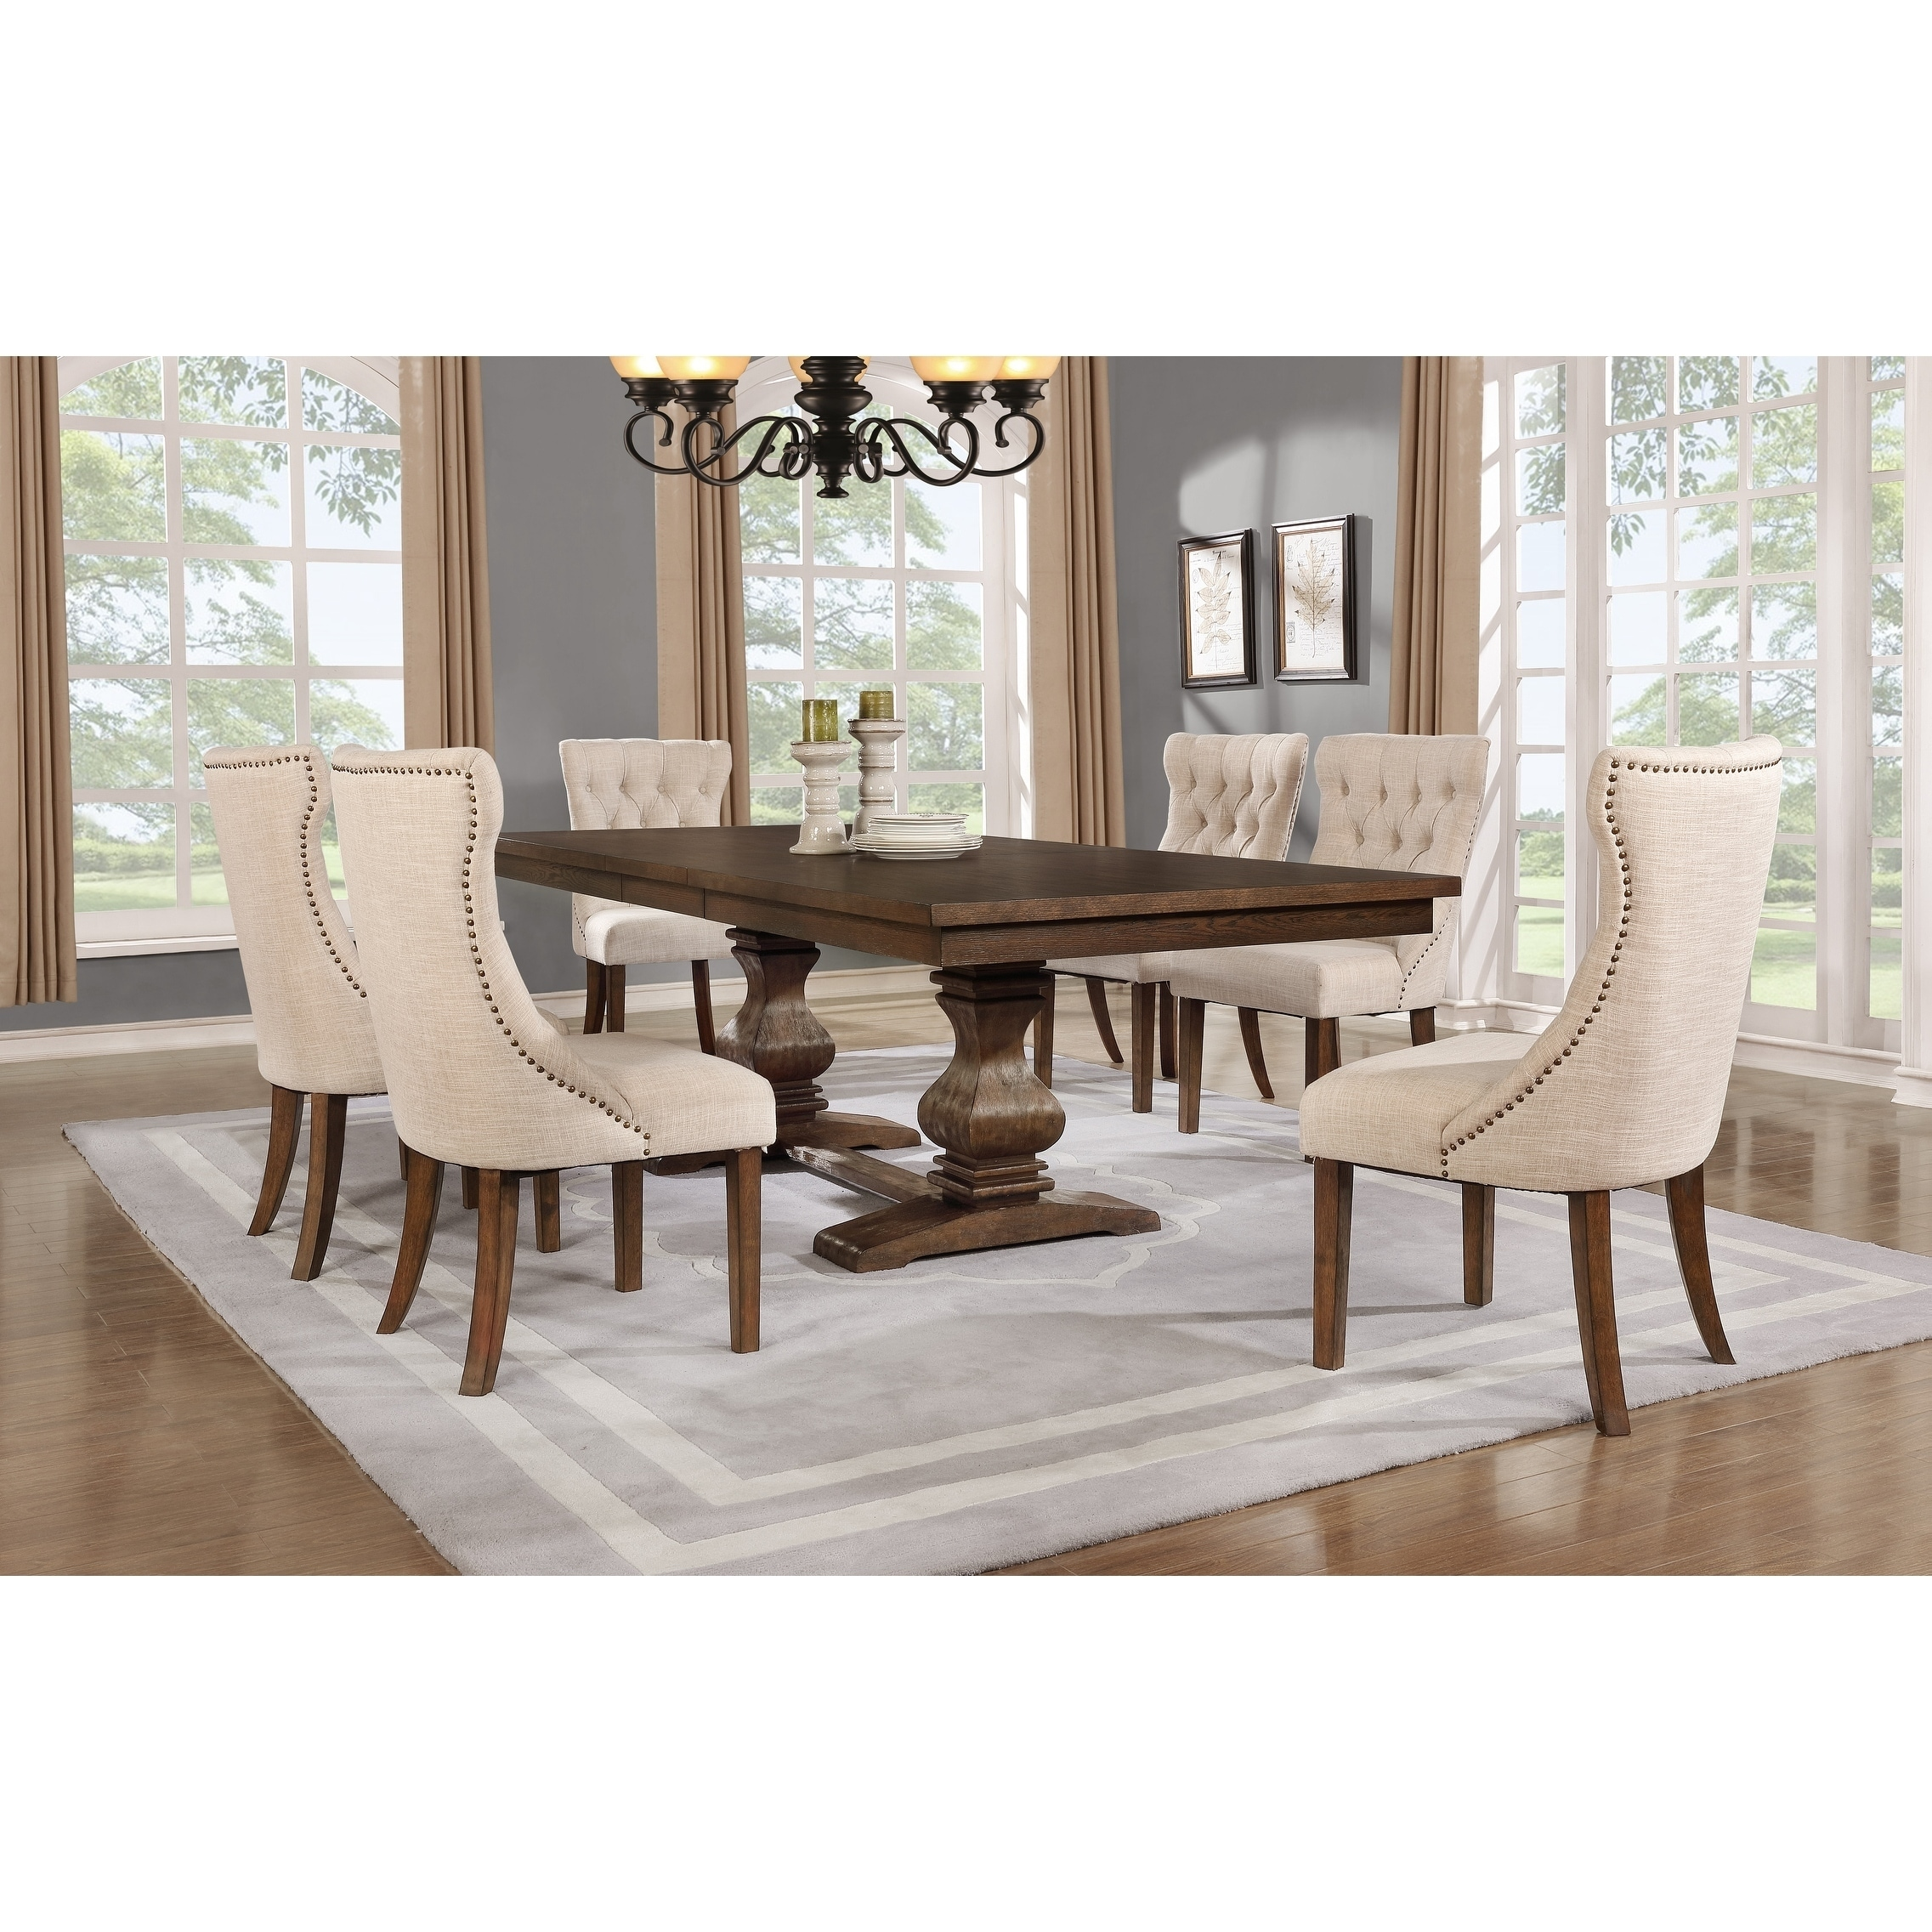 Shop best quality furniture 7 piece walnut extension dining table set free shipping today overstock com 18177529